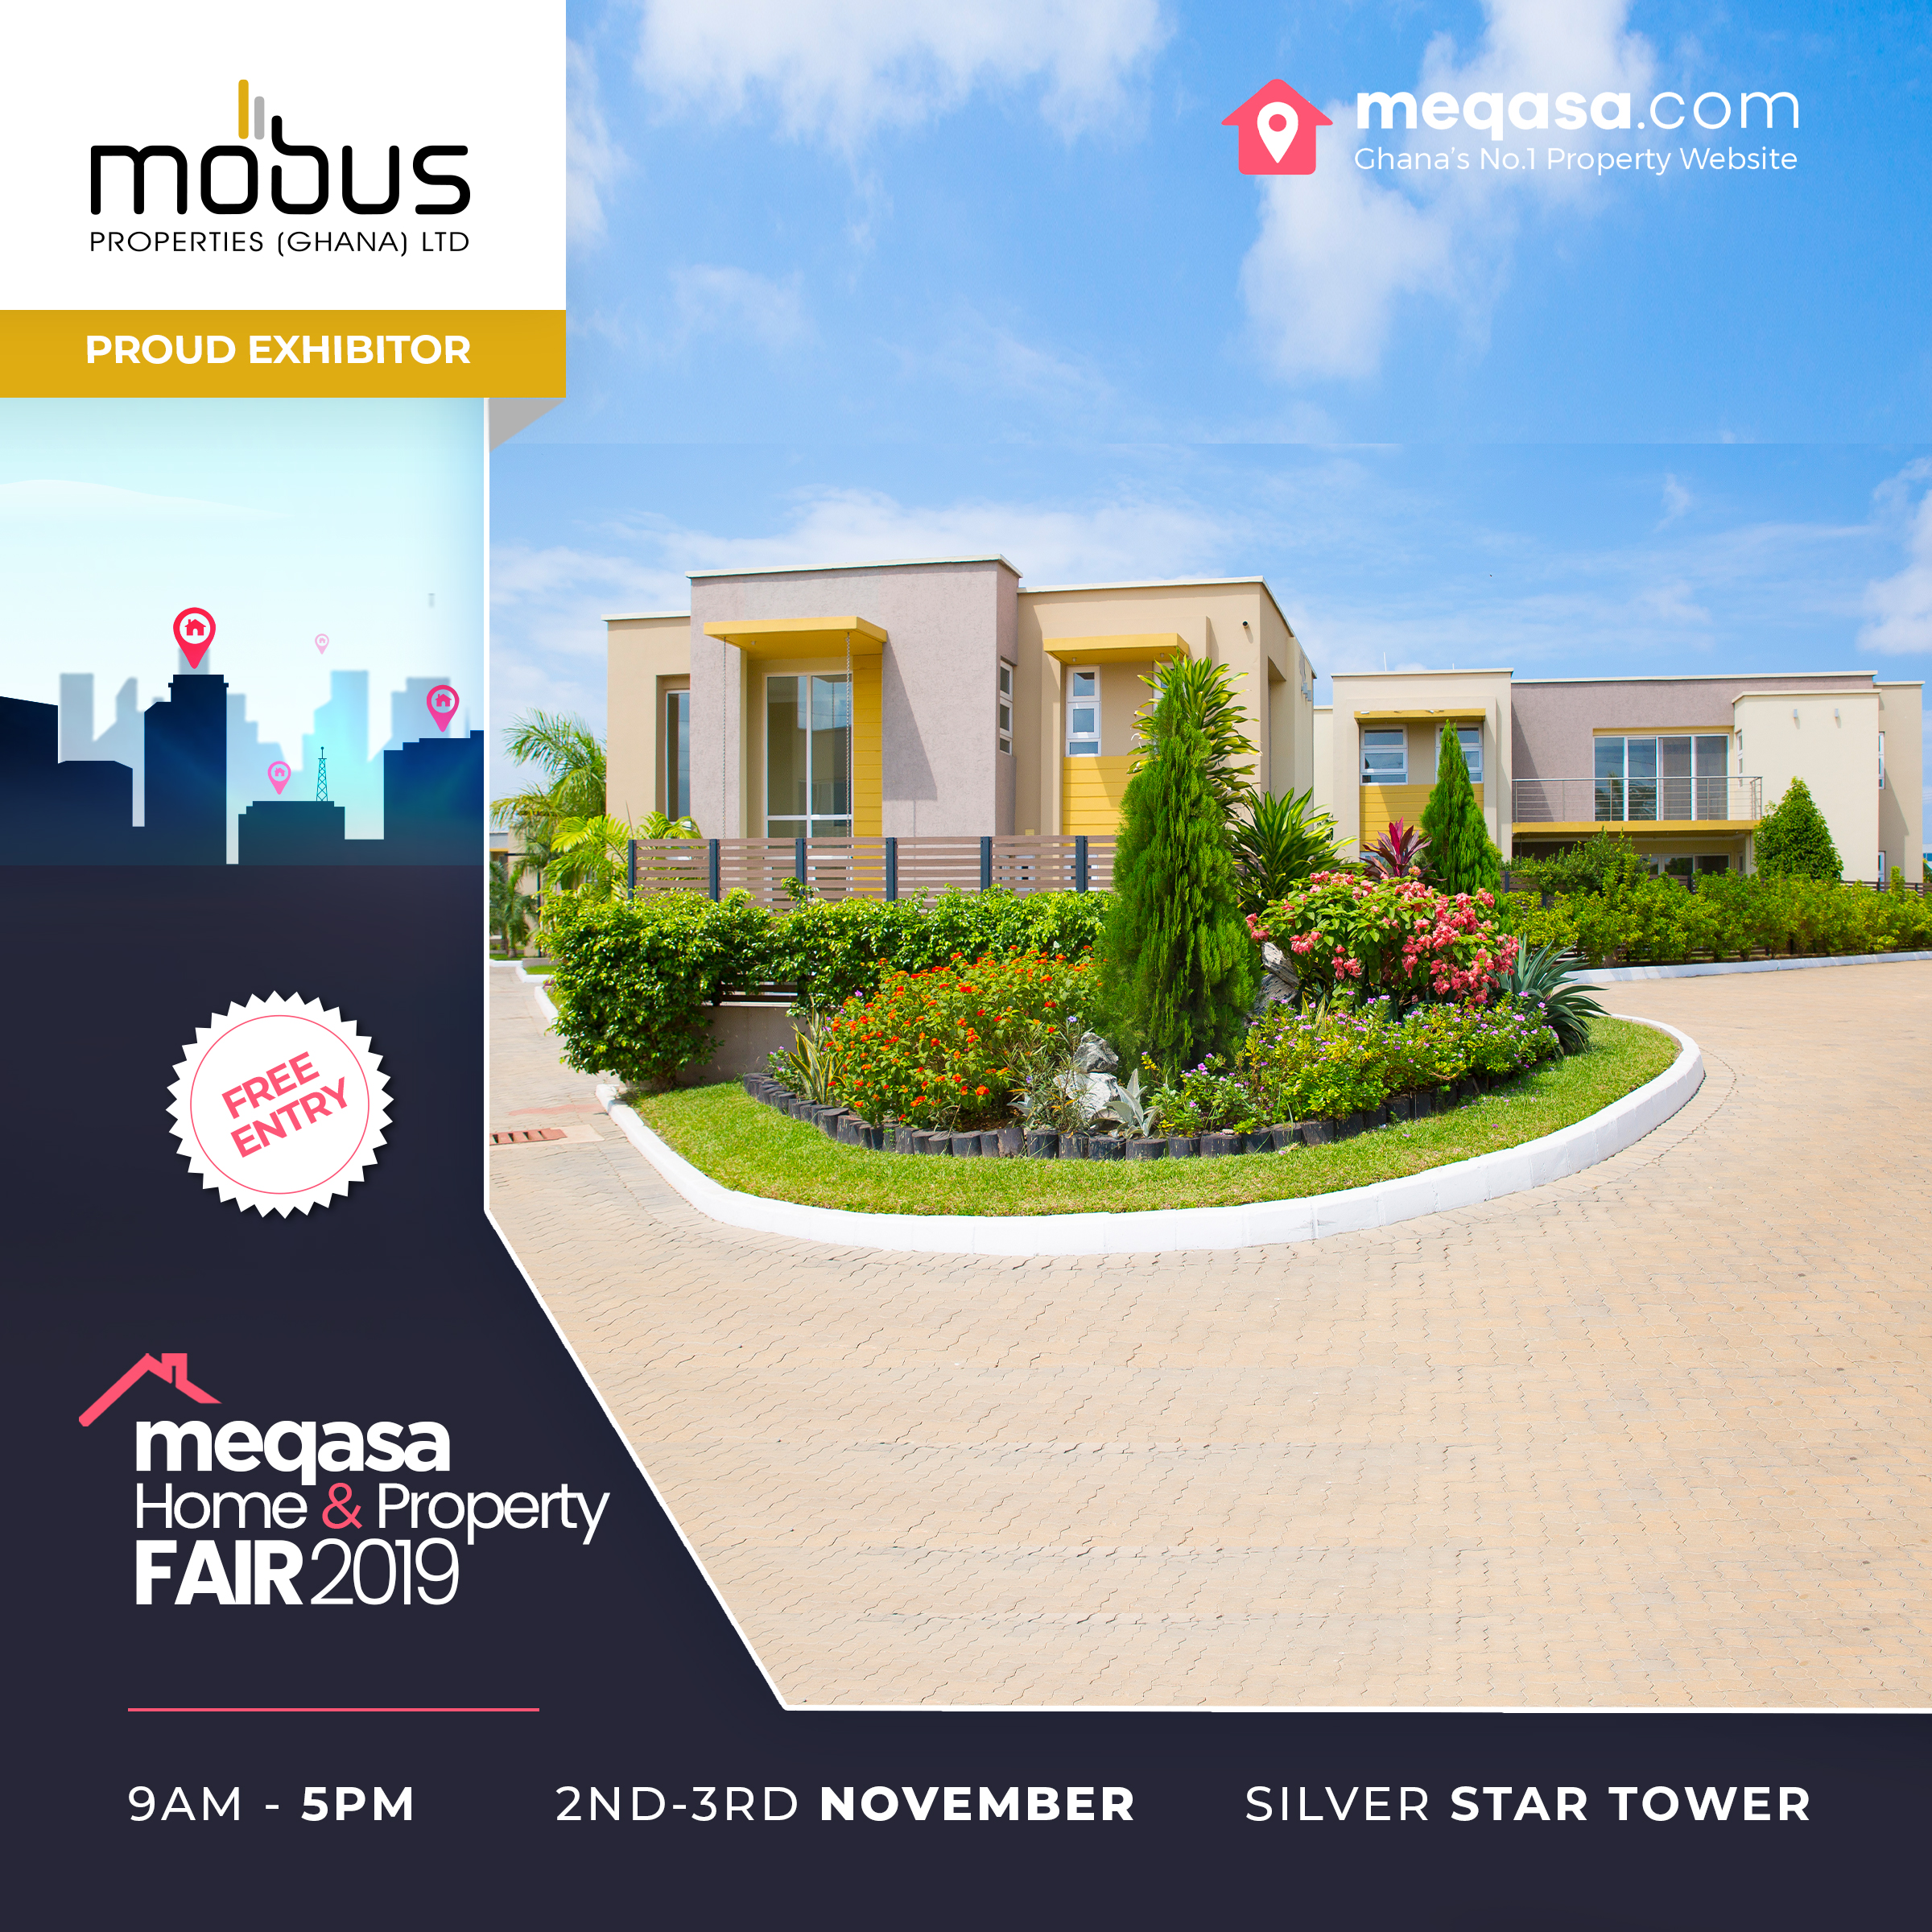 Mobus Properties at Meqasa Home & Property Fair 2019